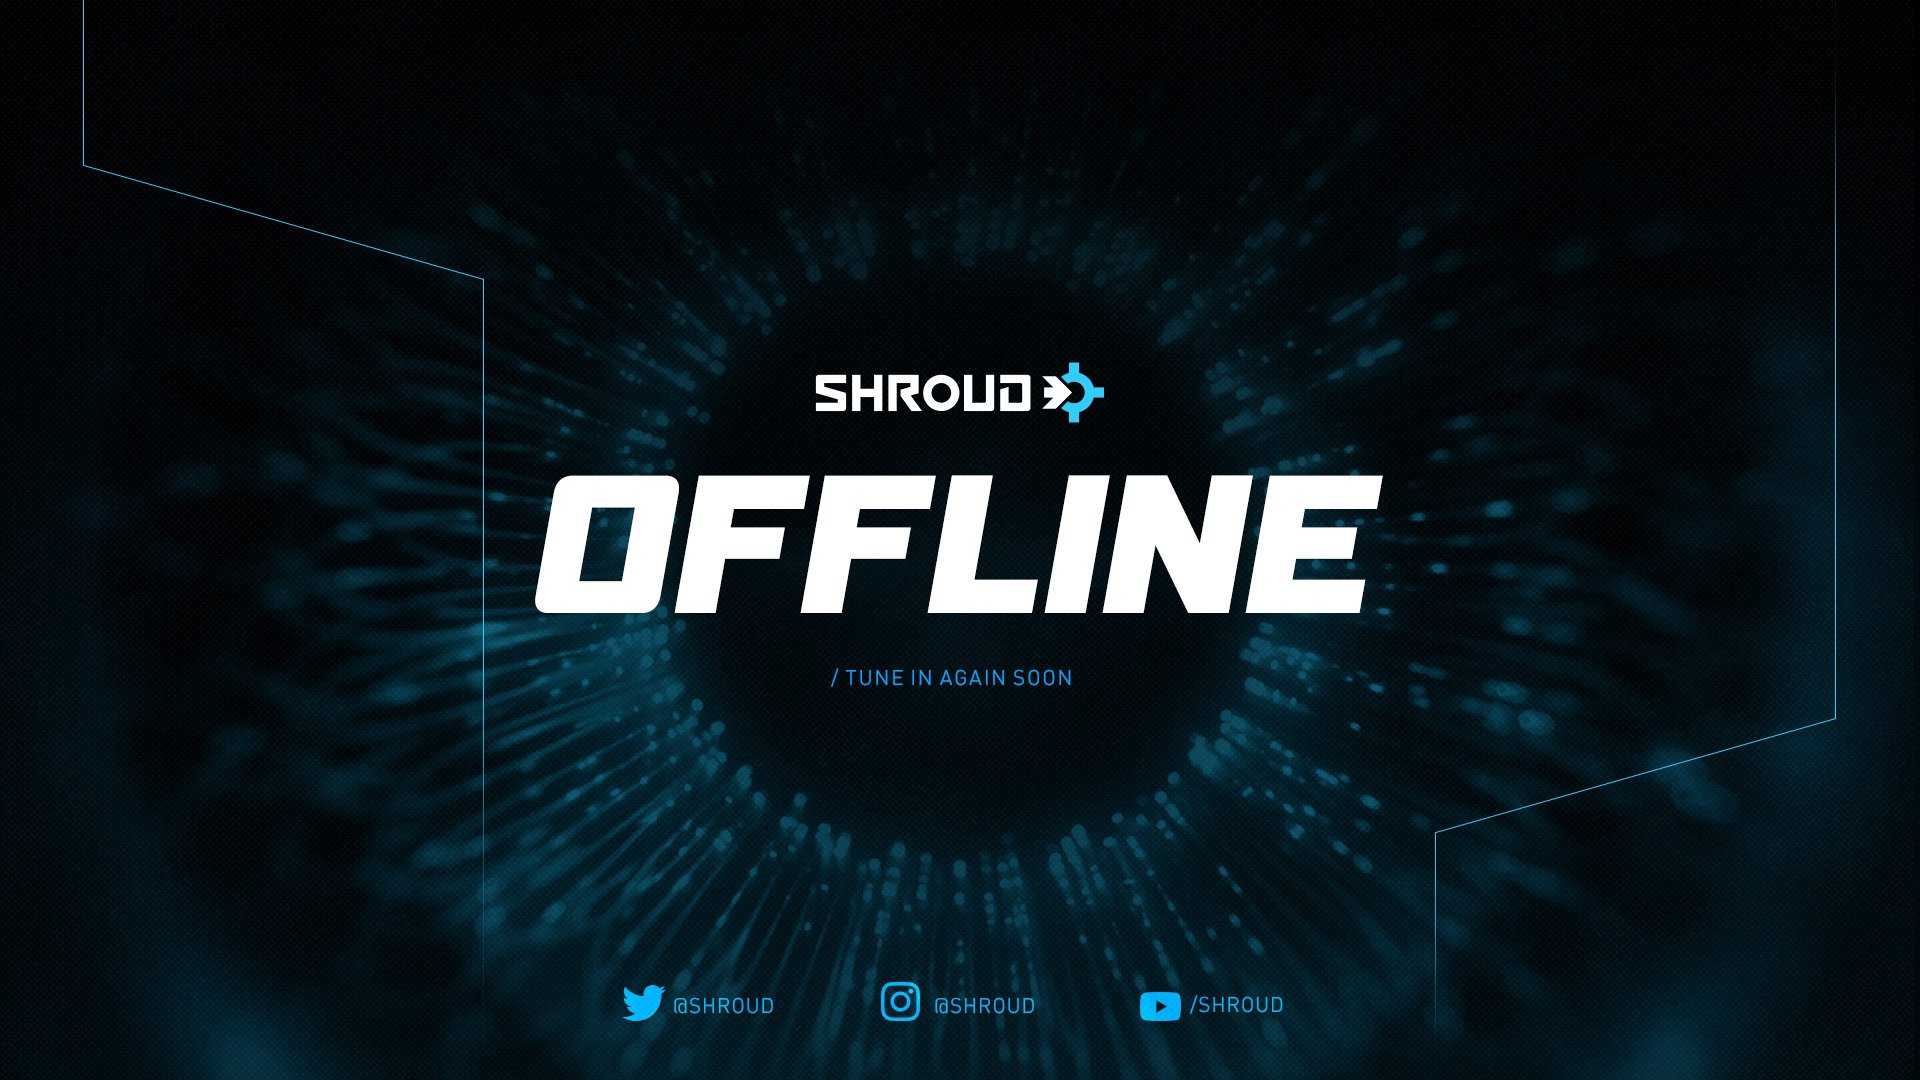 Twitch stream of shroud